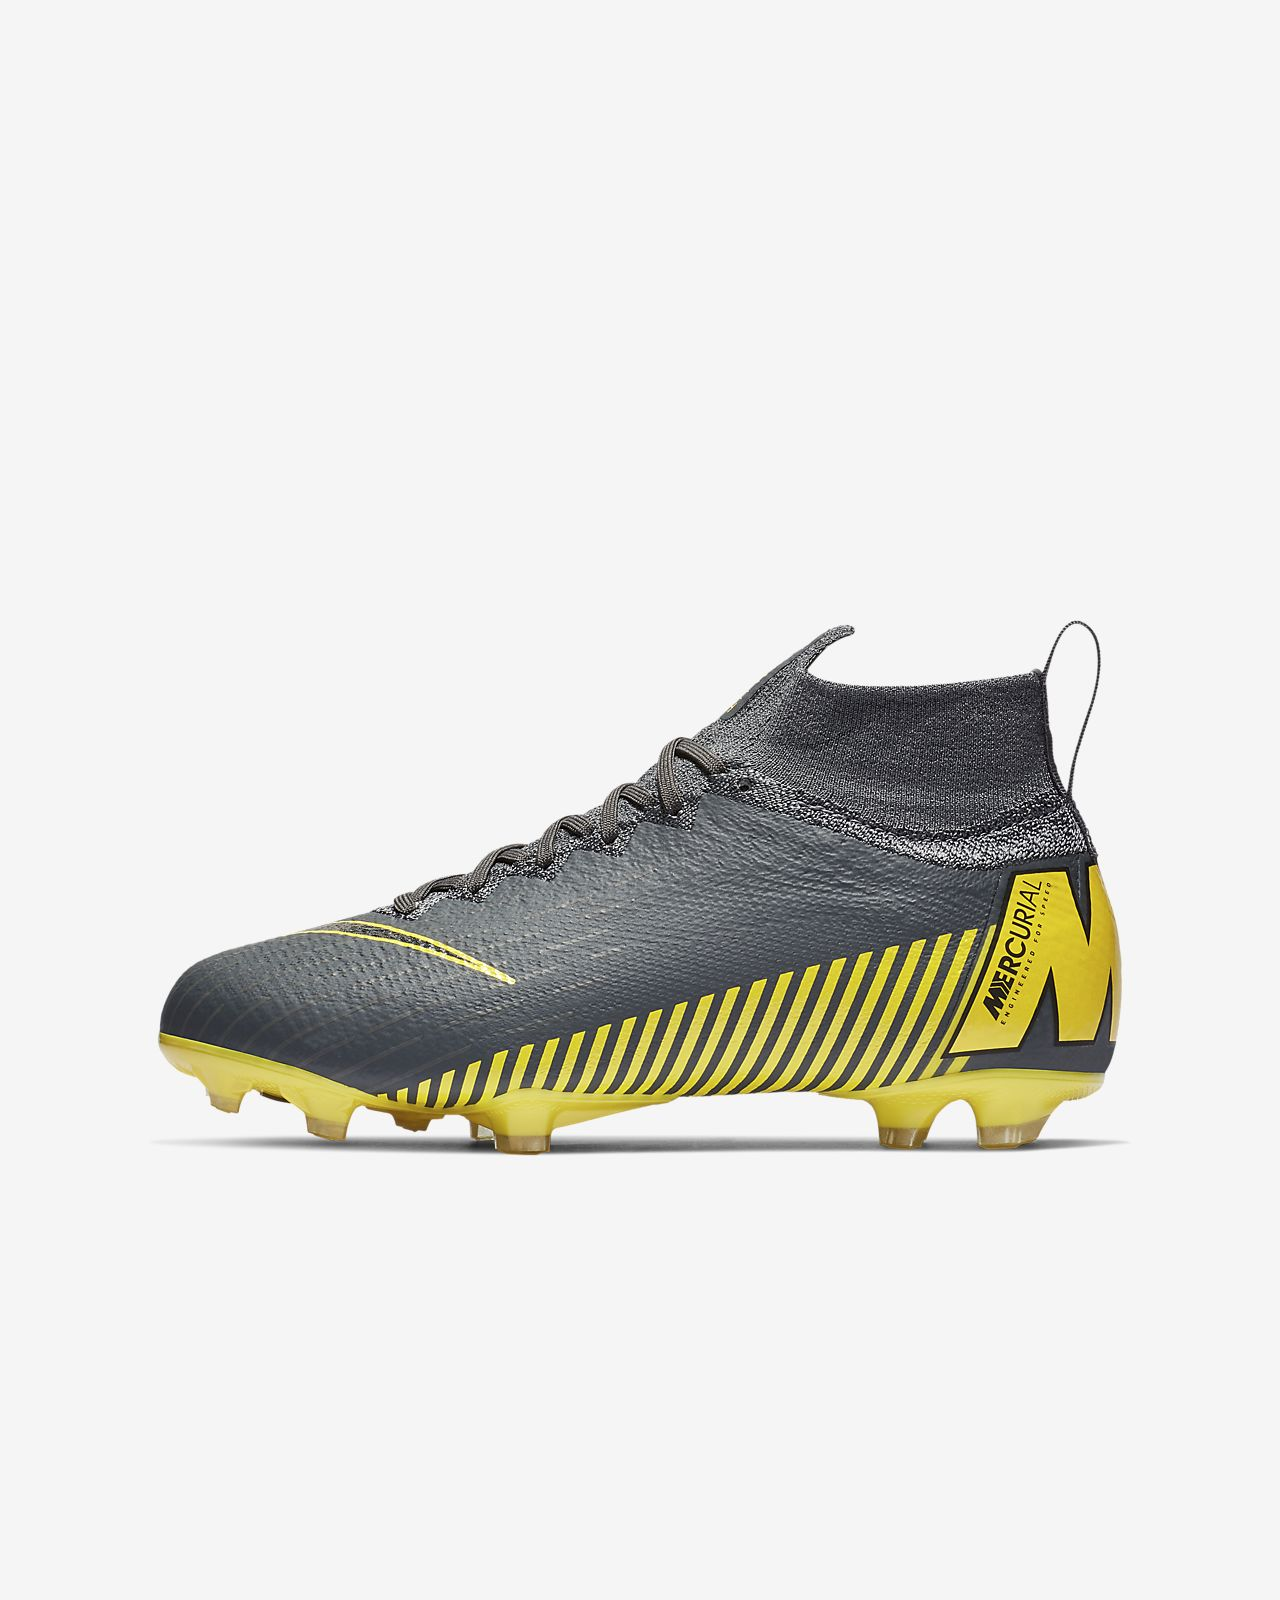 Nike Jr. Superfly 6 Elite FG Game Over fotballsko til gress til store barn